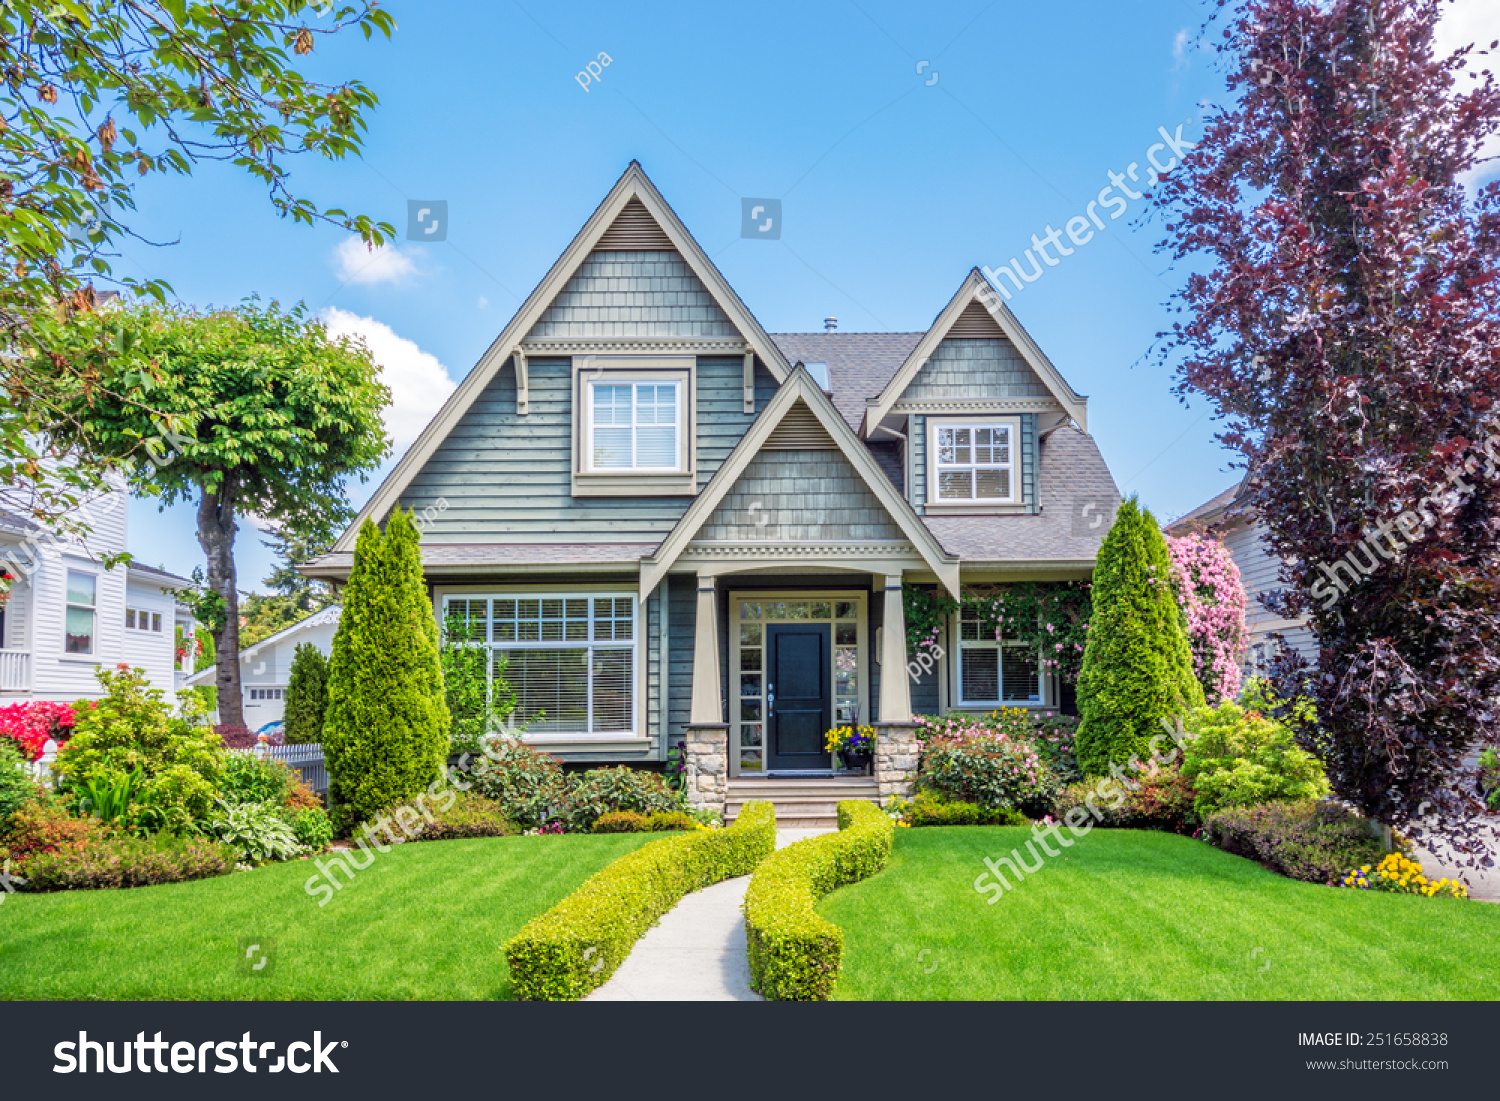 Cozy house with beautiful landscaping on a sunny day home for Cozy homes